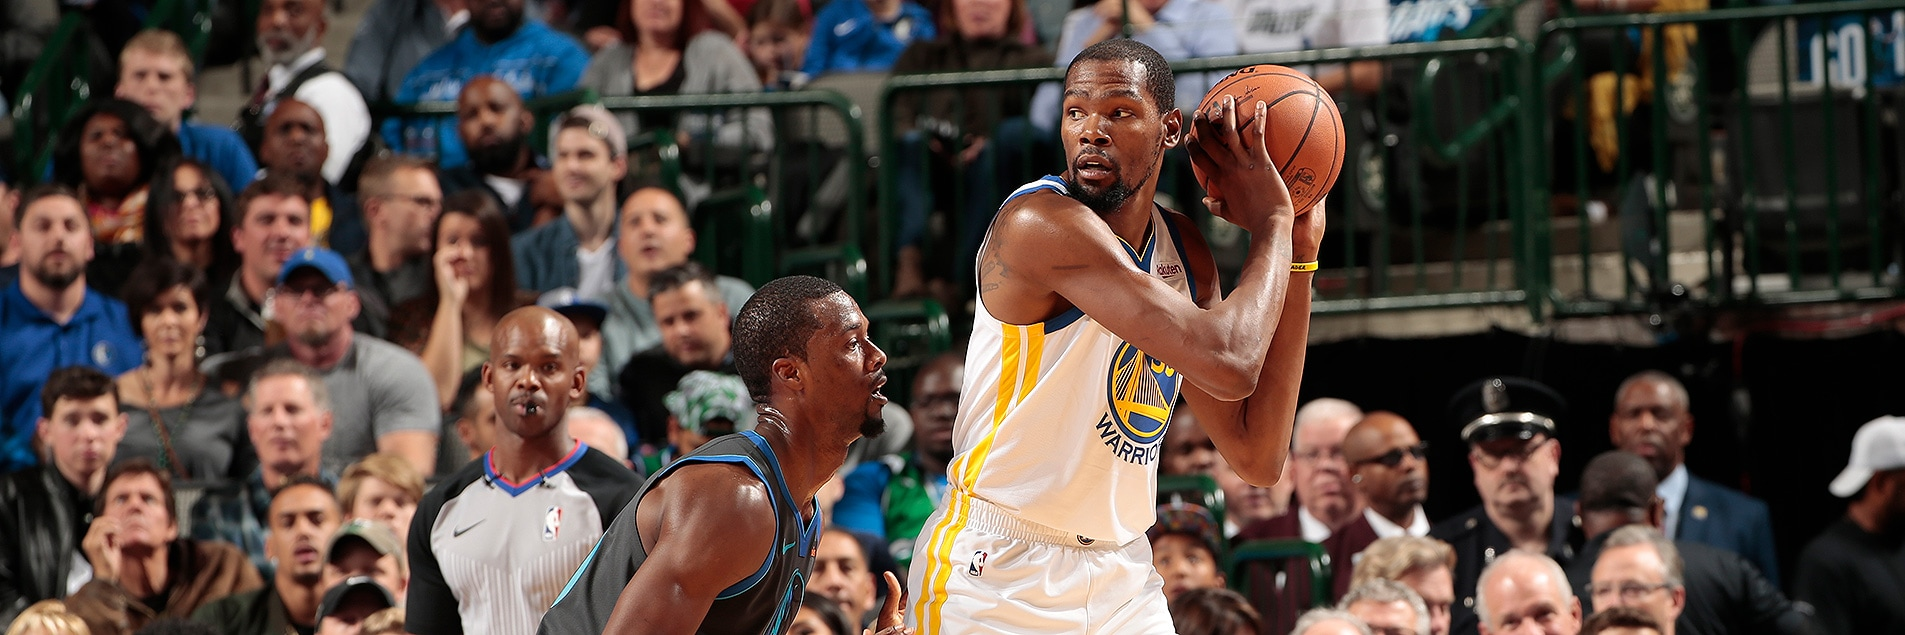 Dubs Struggle in Crunch Time in Loss to Dallas